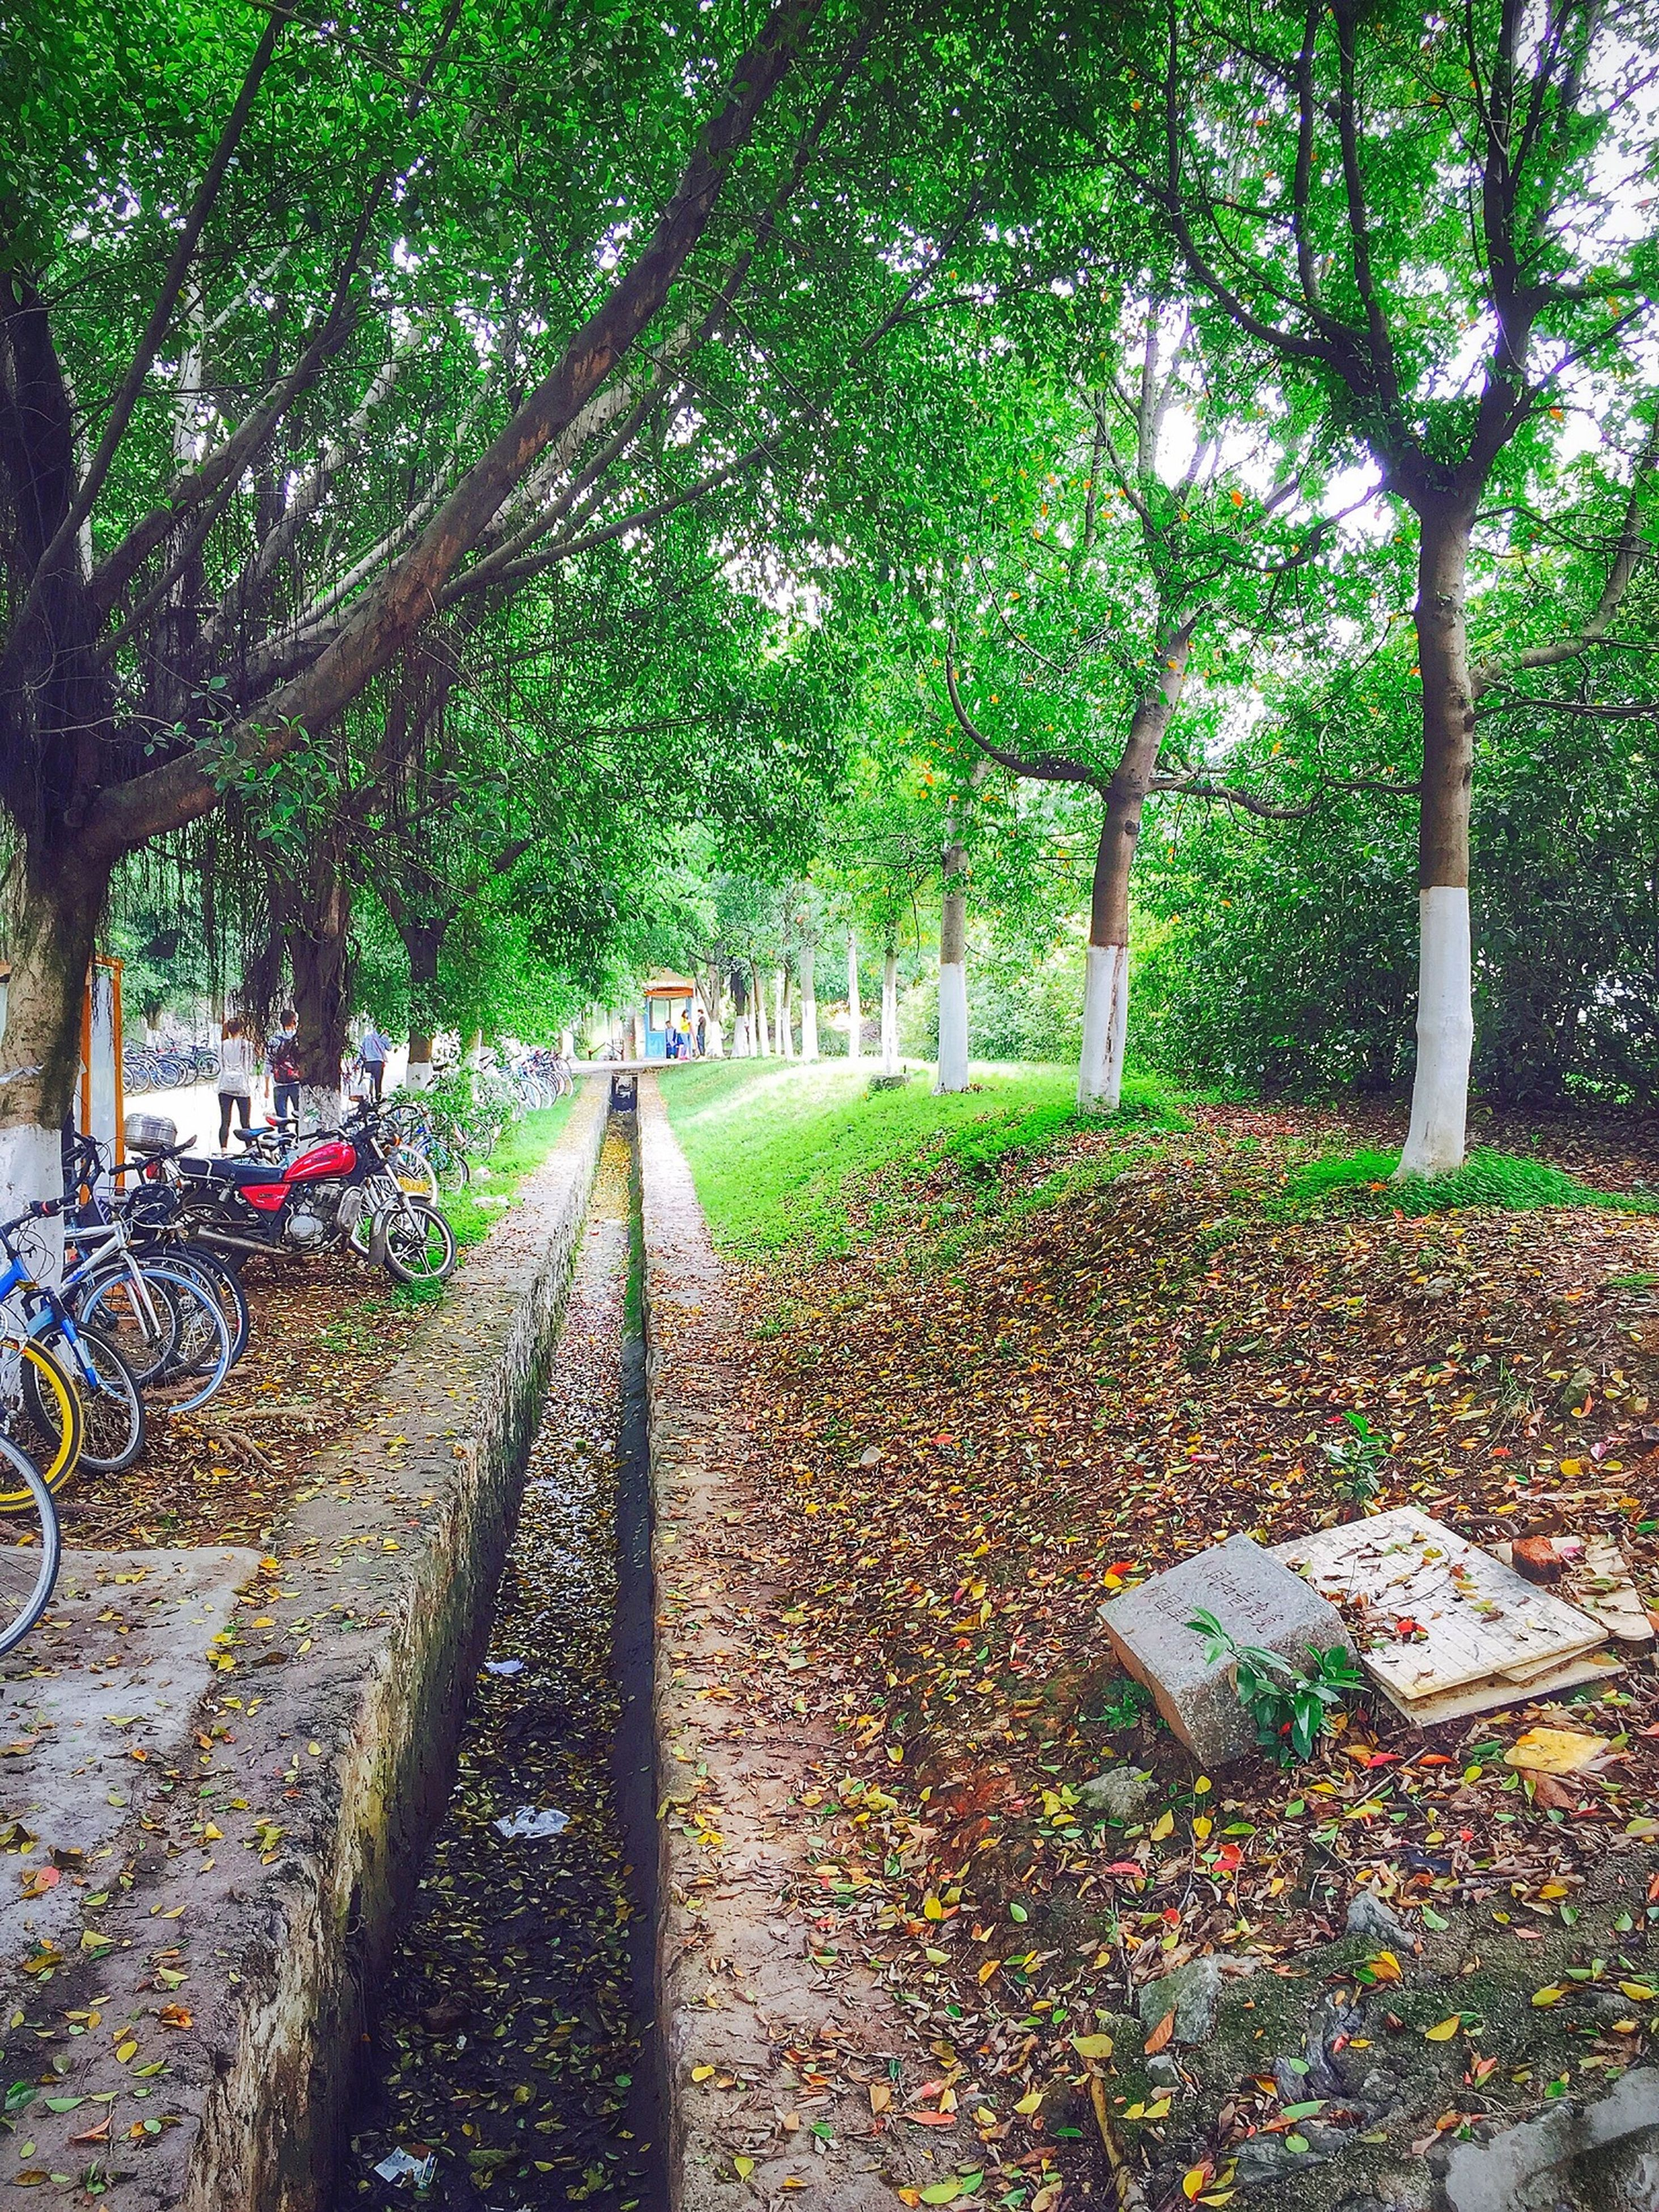 tree, the way forward, growth, footpath, park - man made space, leaf, green color, plant, nature, walkway, tranquility, day, diminishing perspective, sunlight, outdoors, pathway, formal garden, park, empty, beauty in nature